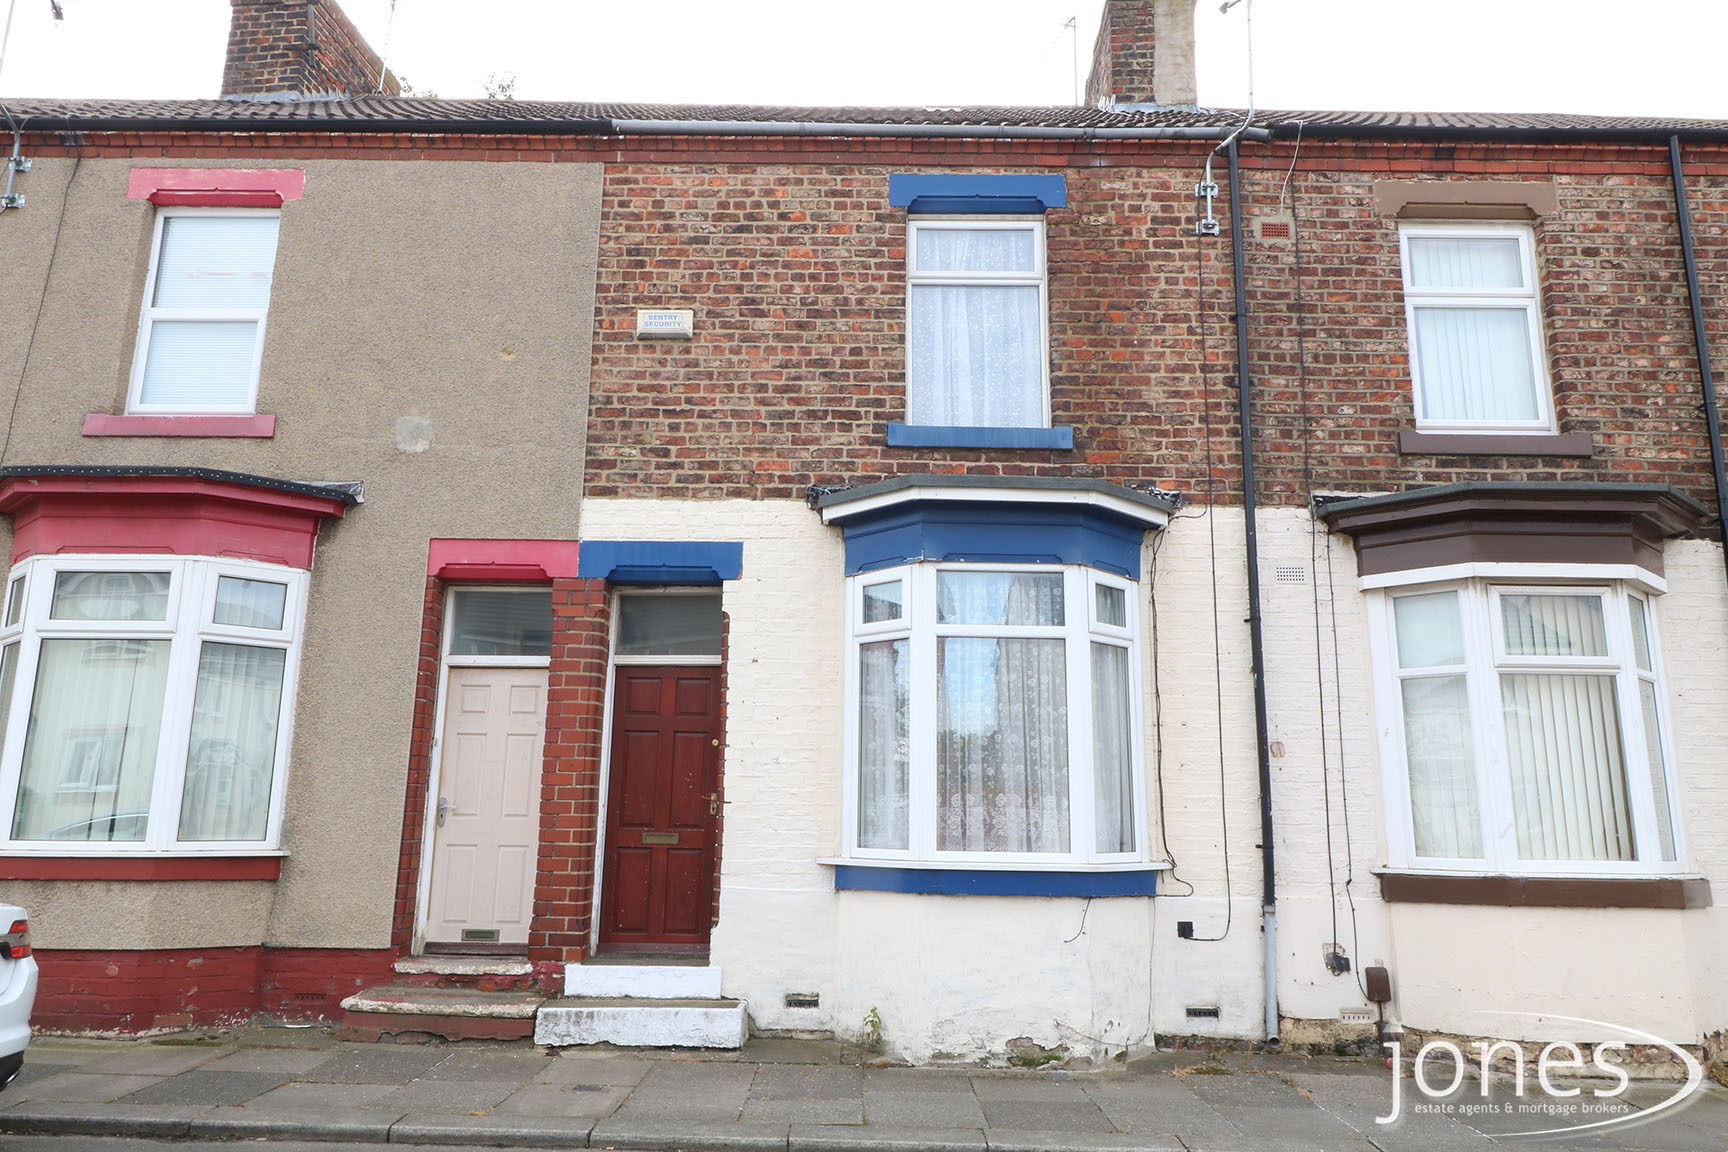 Home for Sale Let - Photo 01 Gilmour Street, Thornaby, Stockton on Tees, TS17 6JR